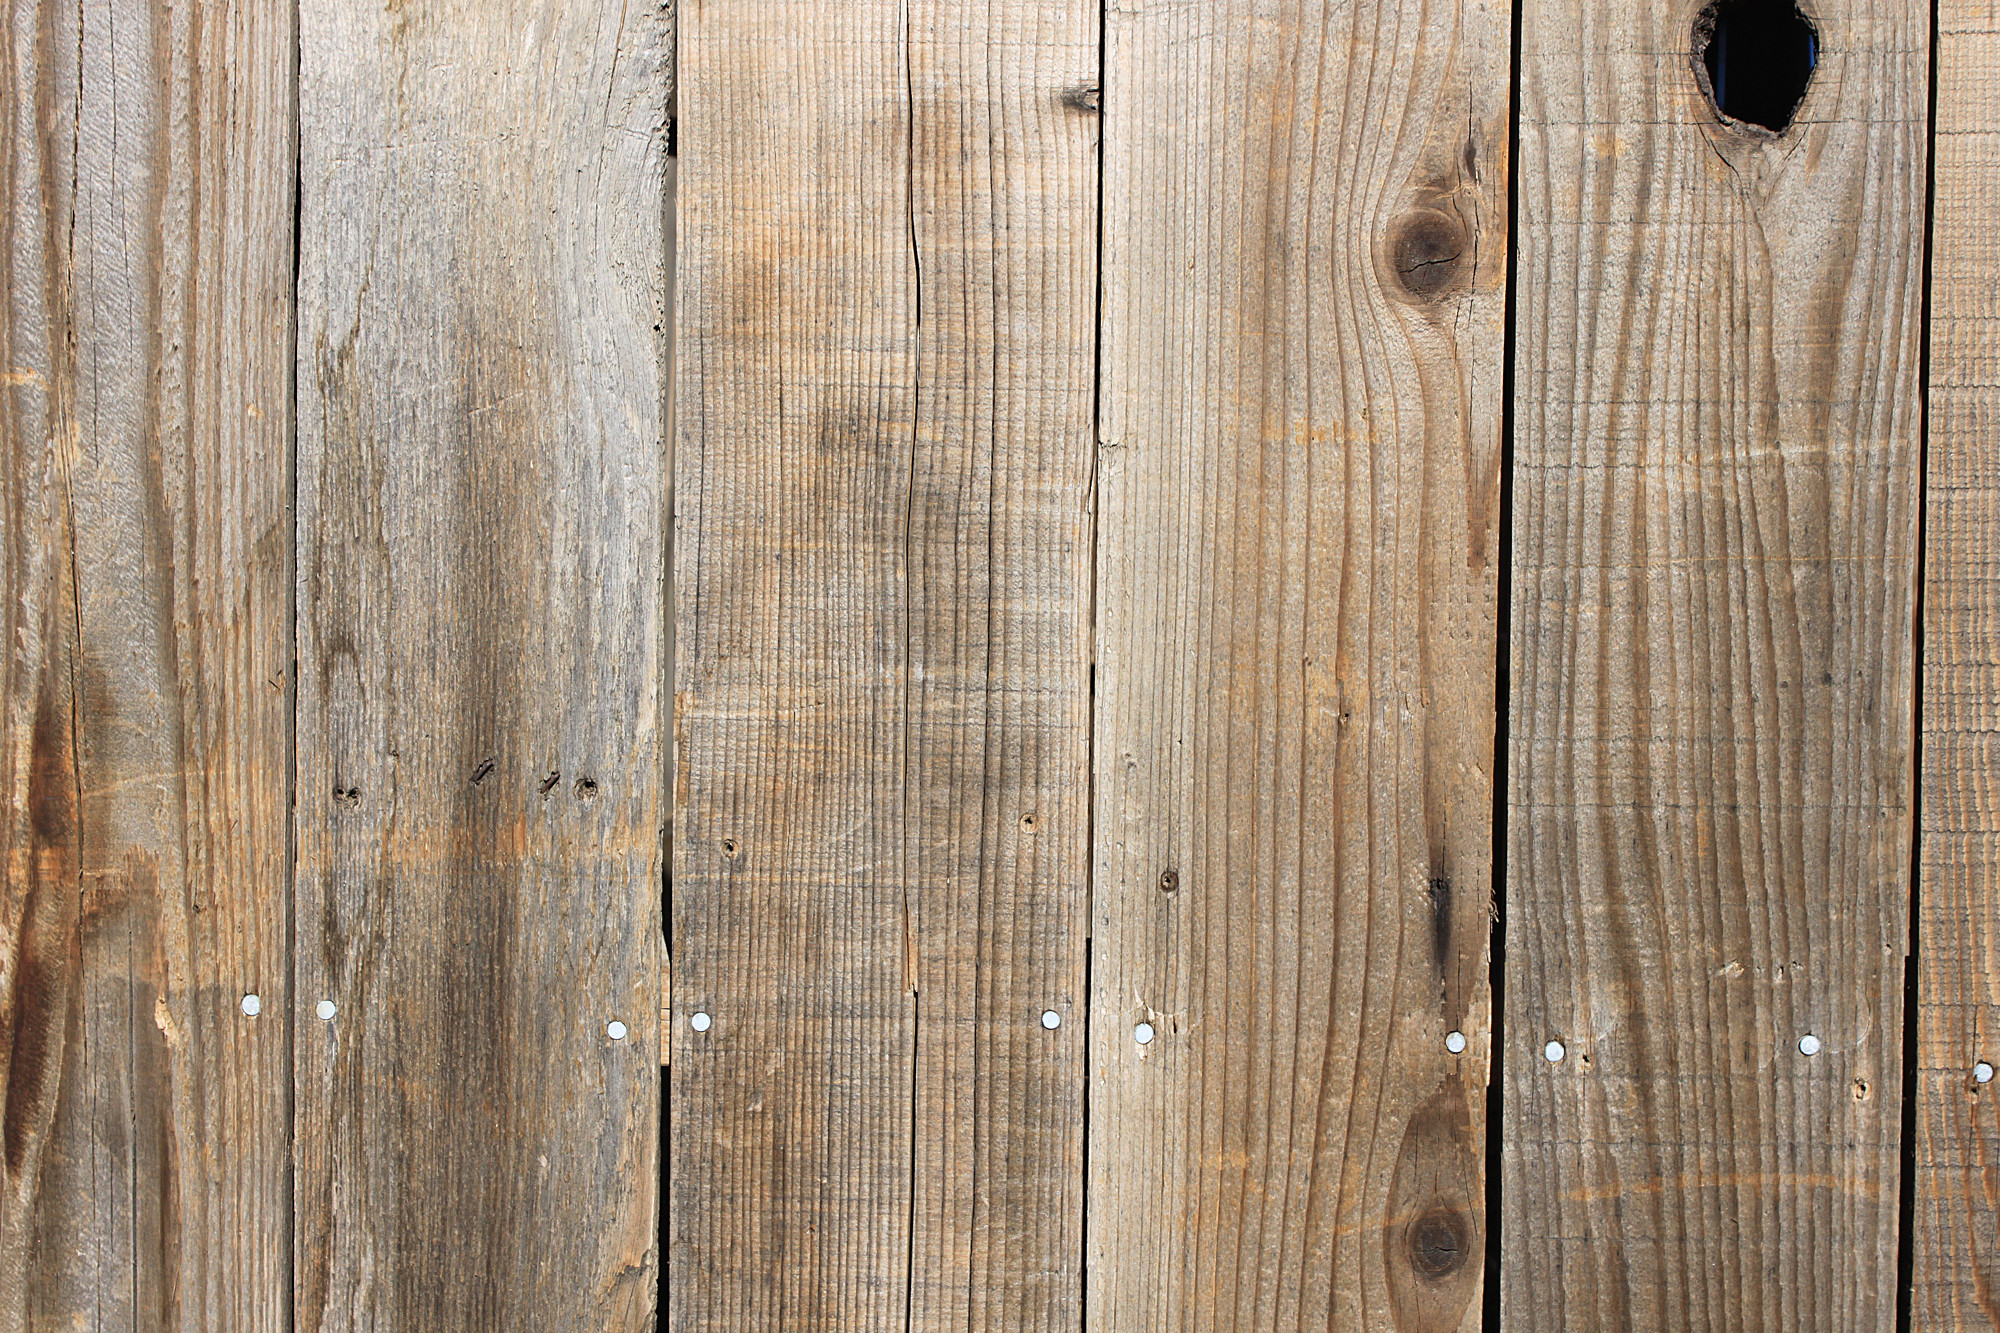 … Rustic Wood Background And Totally FREE High Res Rustic Wooden Textures  And Graphic …